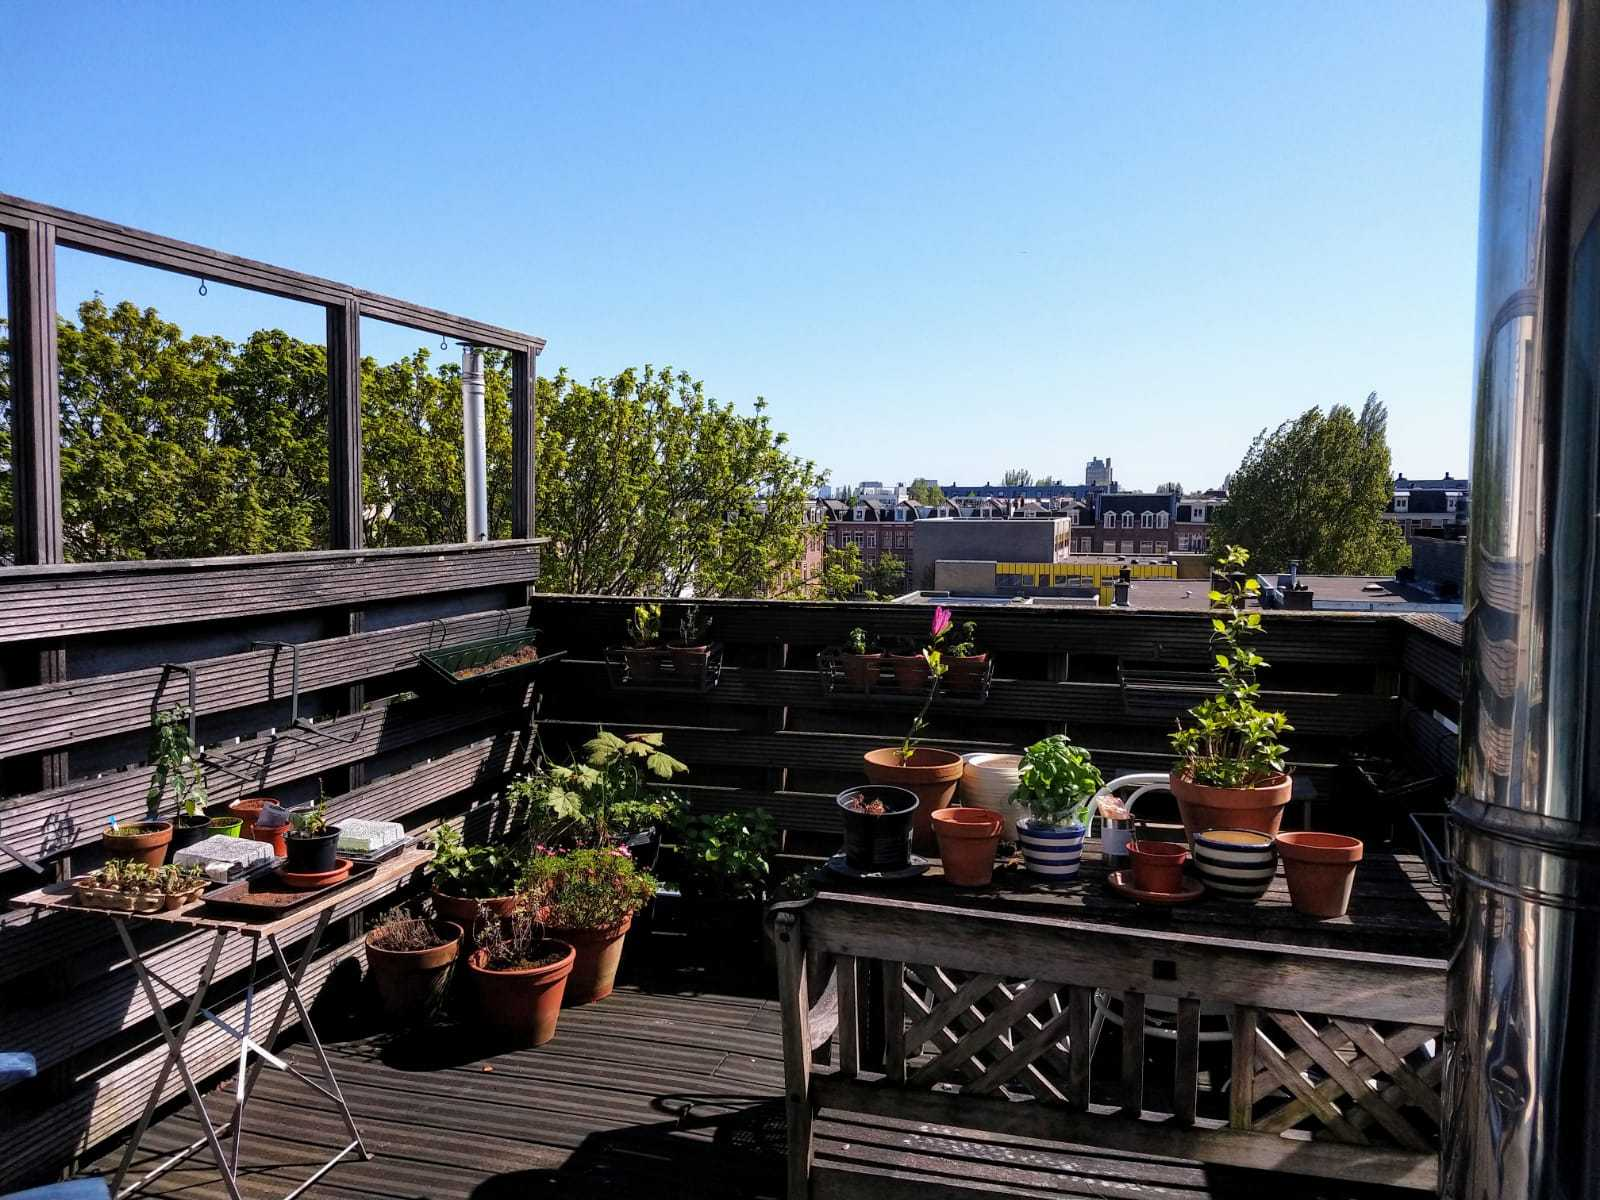 Roof terrace with plants